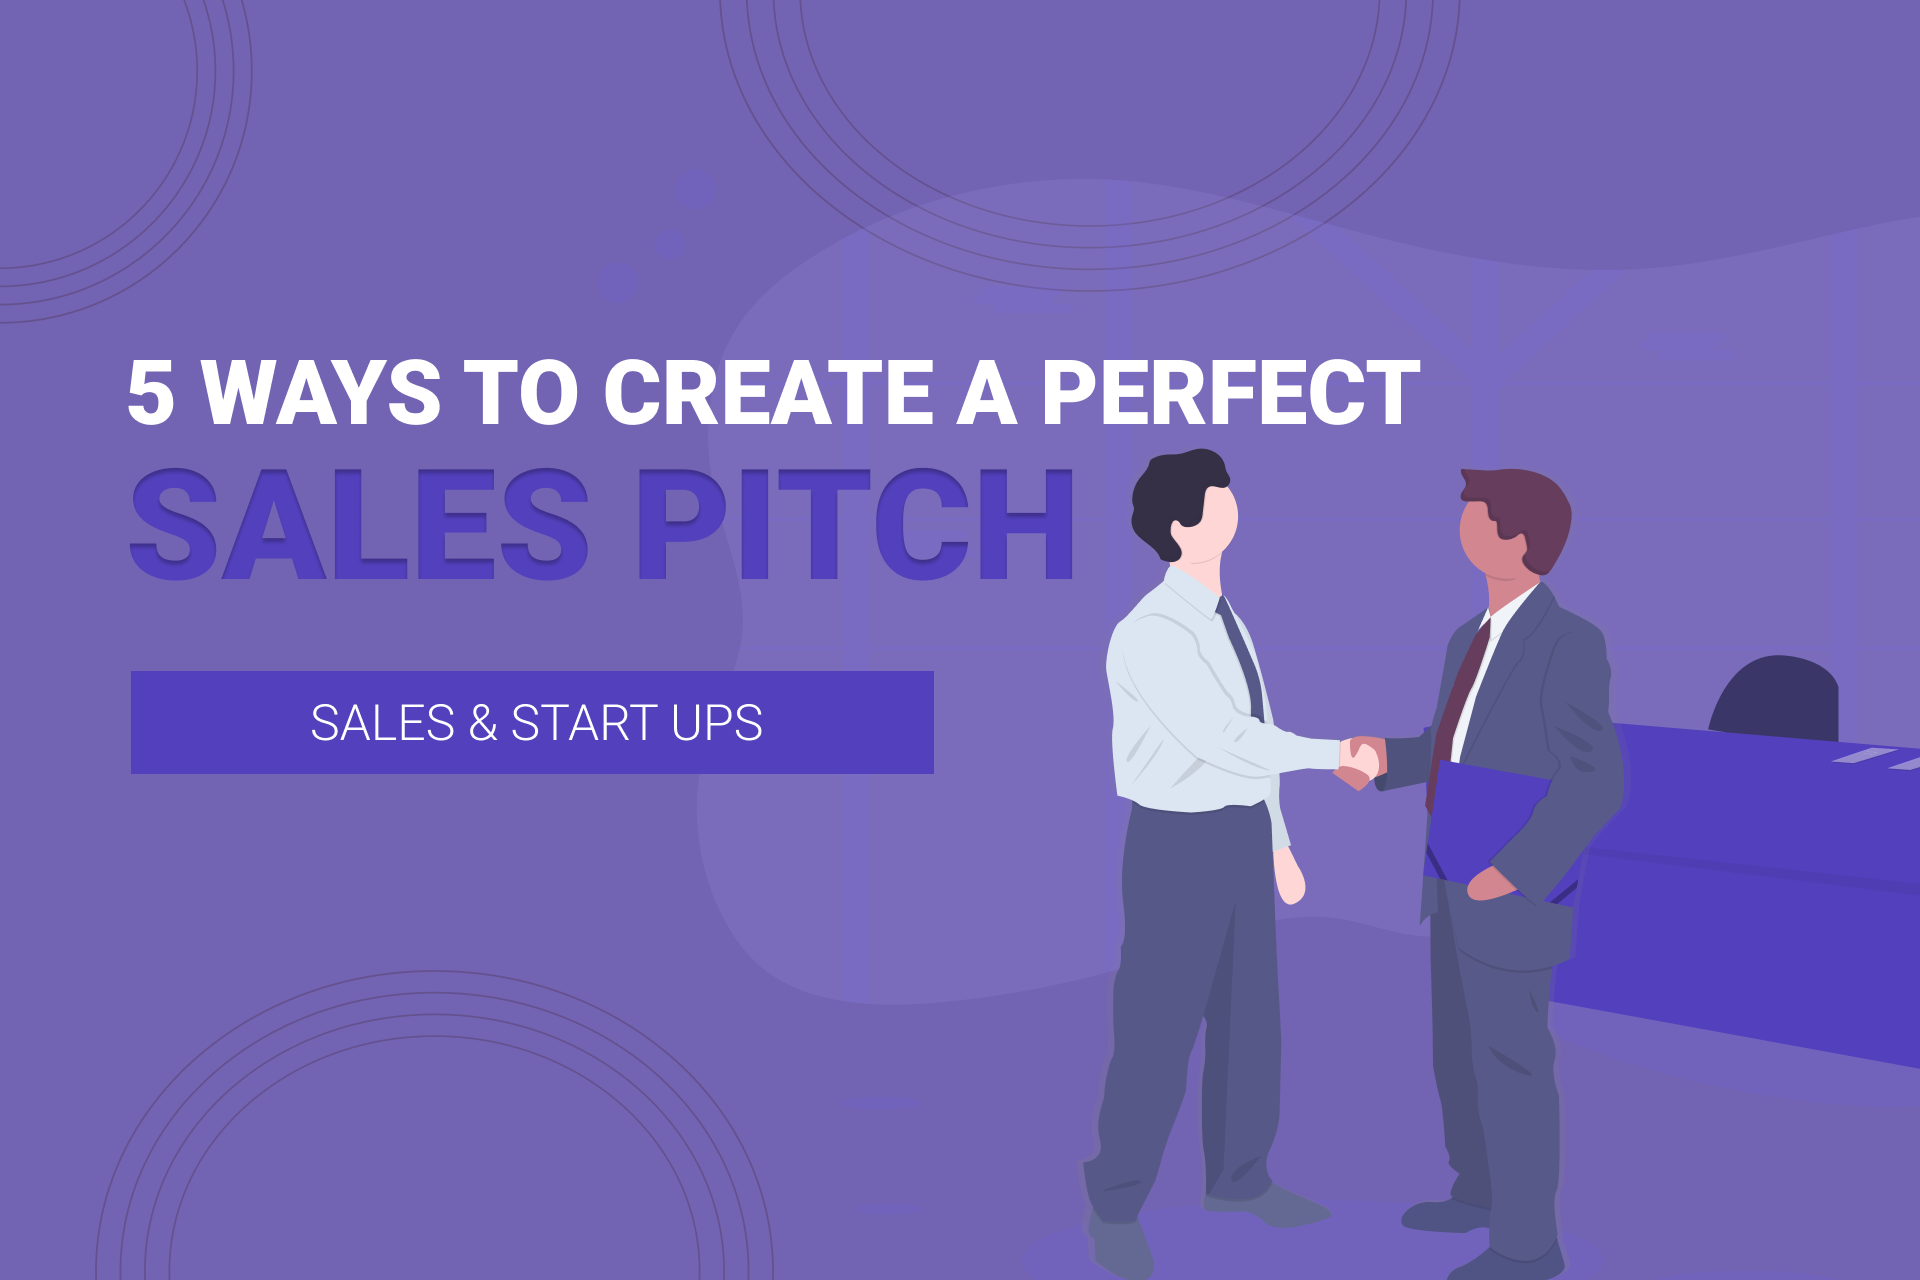 5 Ways To Create A Perfect Sales Pitch